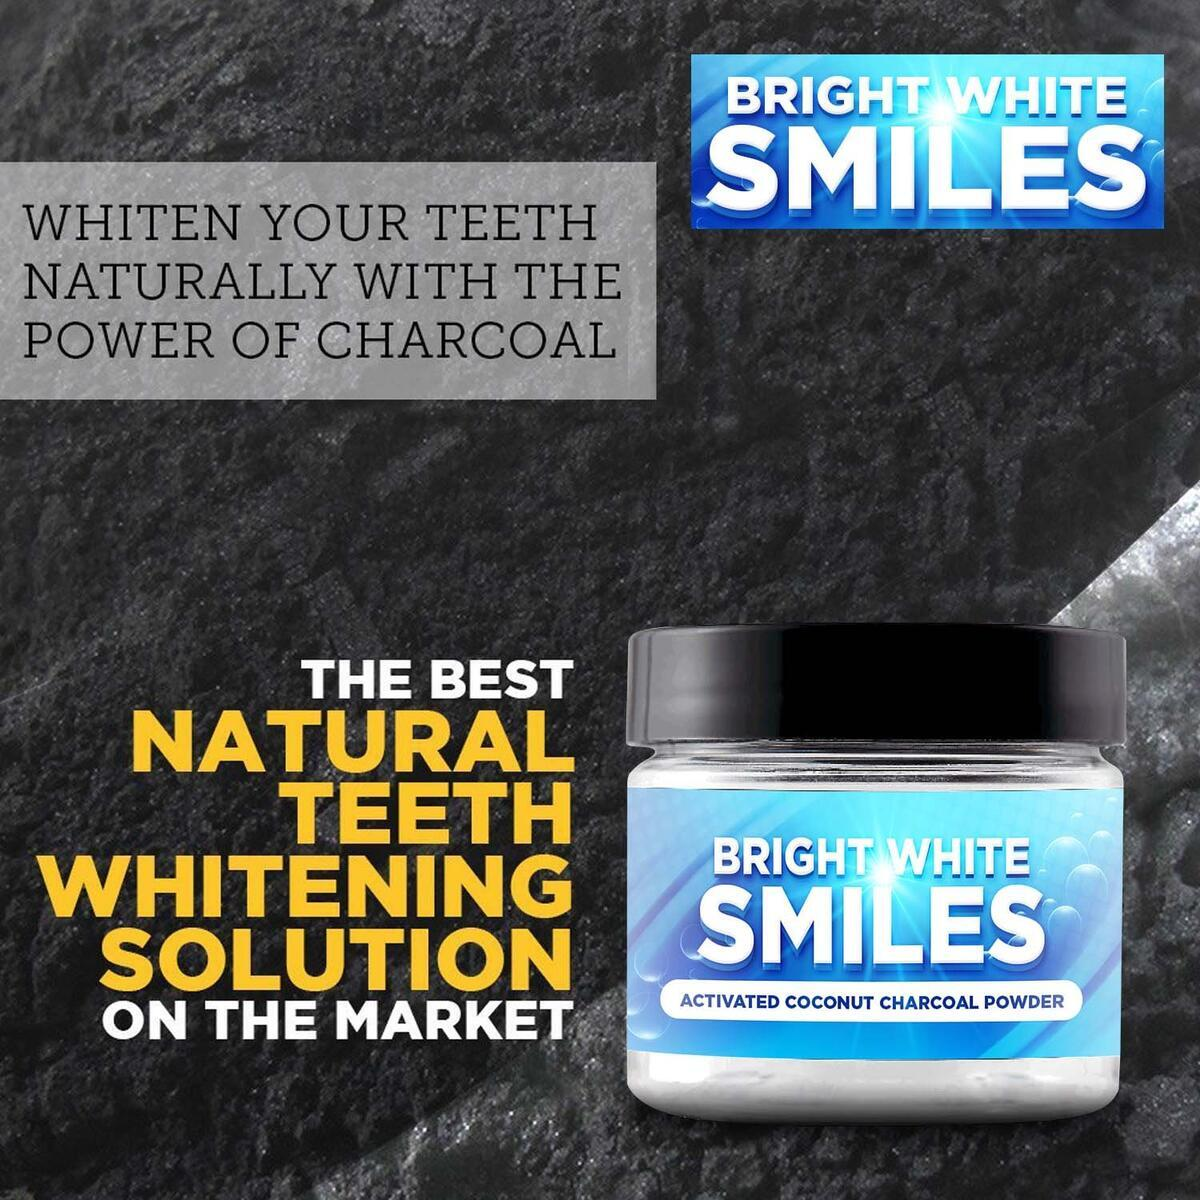 Bright White Smiles Natural Teeth Whitening Activated Charcoal Powder